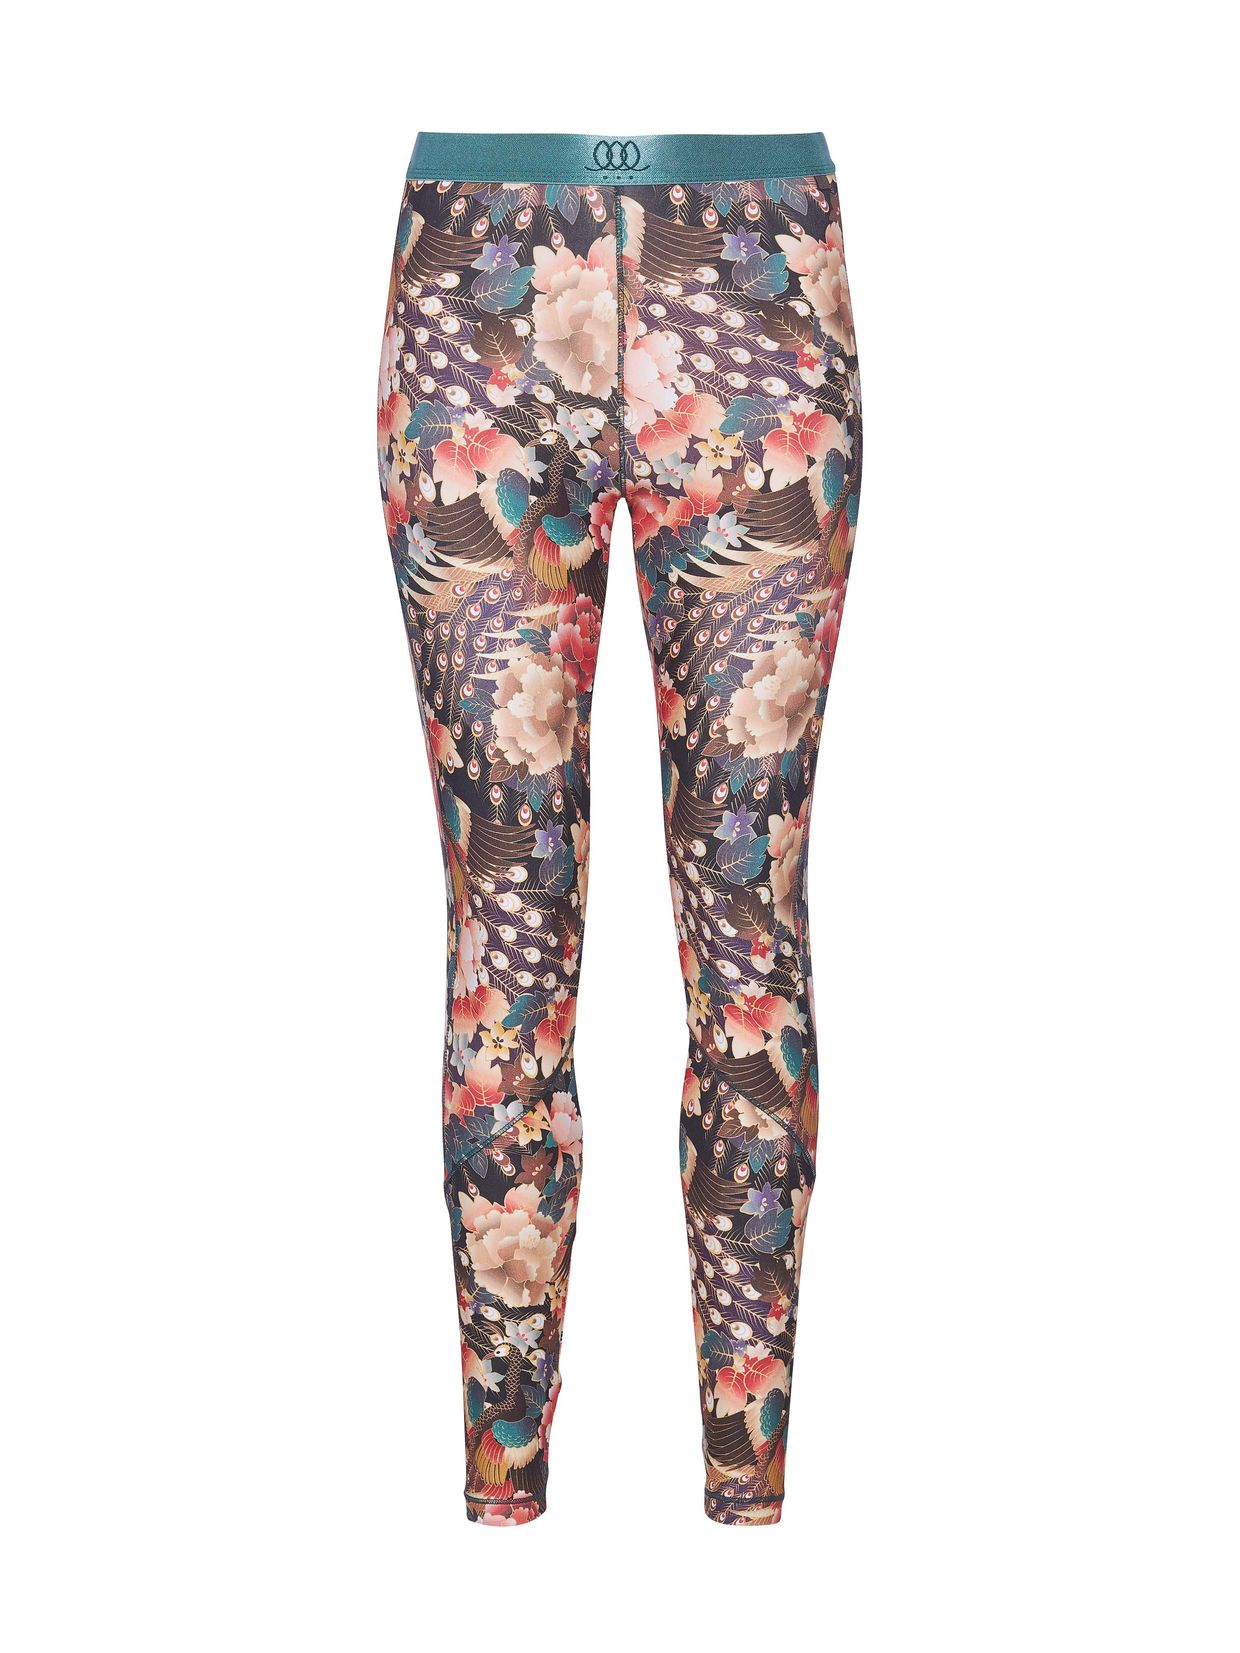 Leggings, Rituals, €39,90